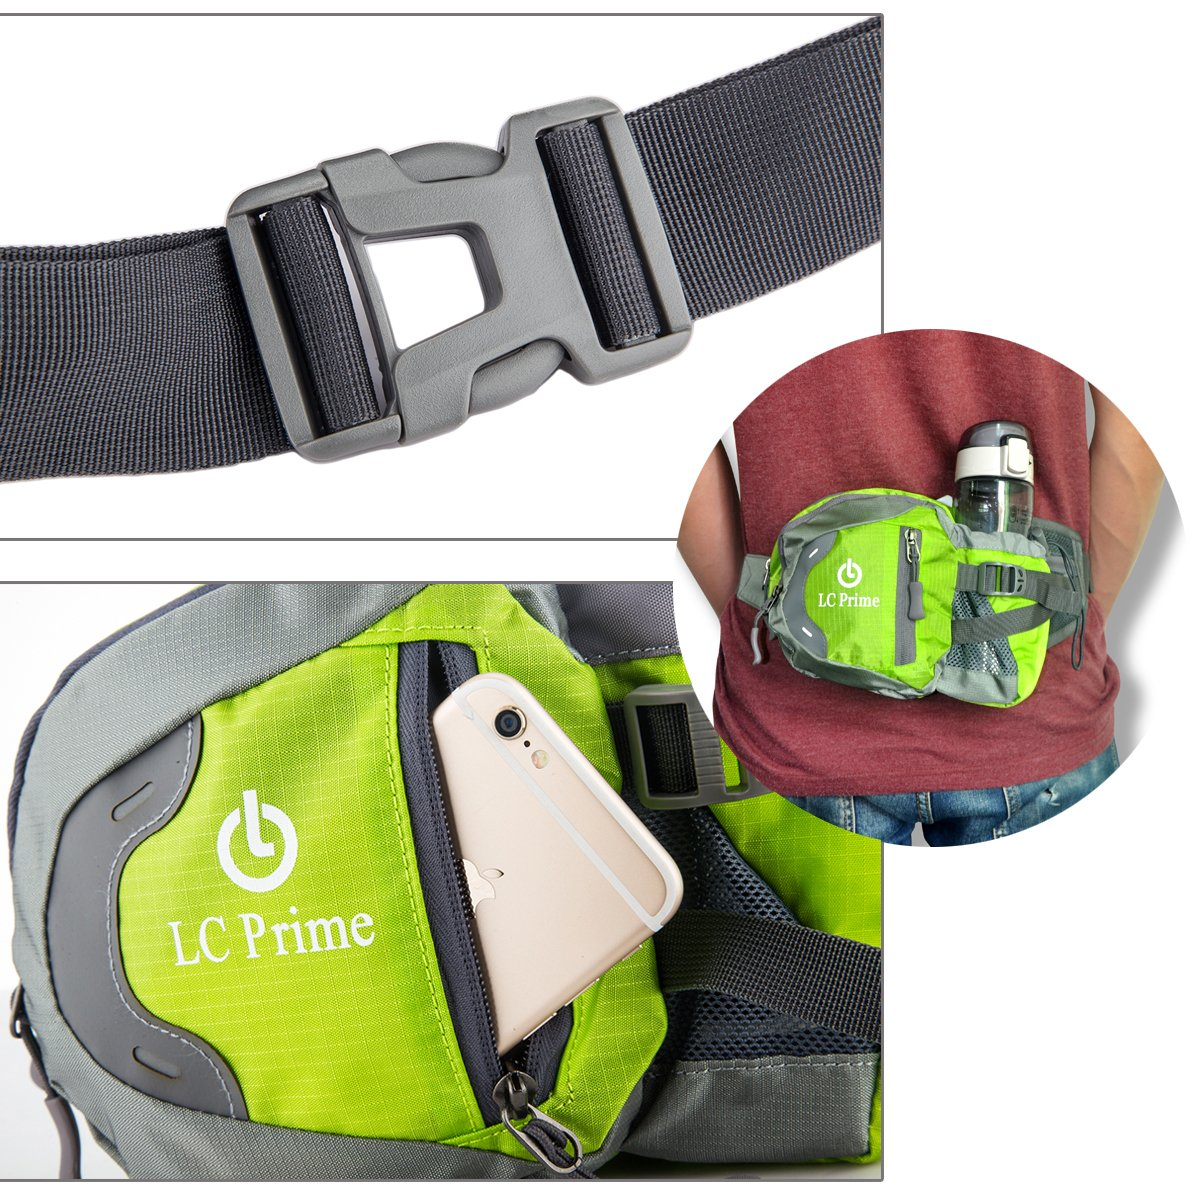 by LC Prime Holder for Hiking Camping Dog Walking nylon fabric multicolored Not Included Waist Pack Fanny Pack Bum Bag Hip Pack Running Bag Waist Bag Running Belt Sack Water Resistant with Bottle